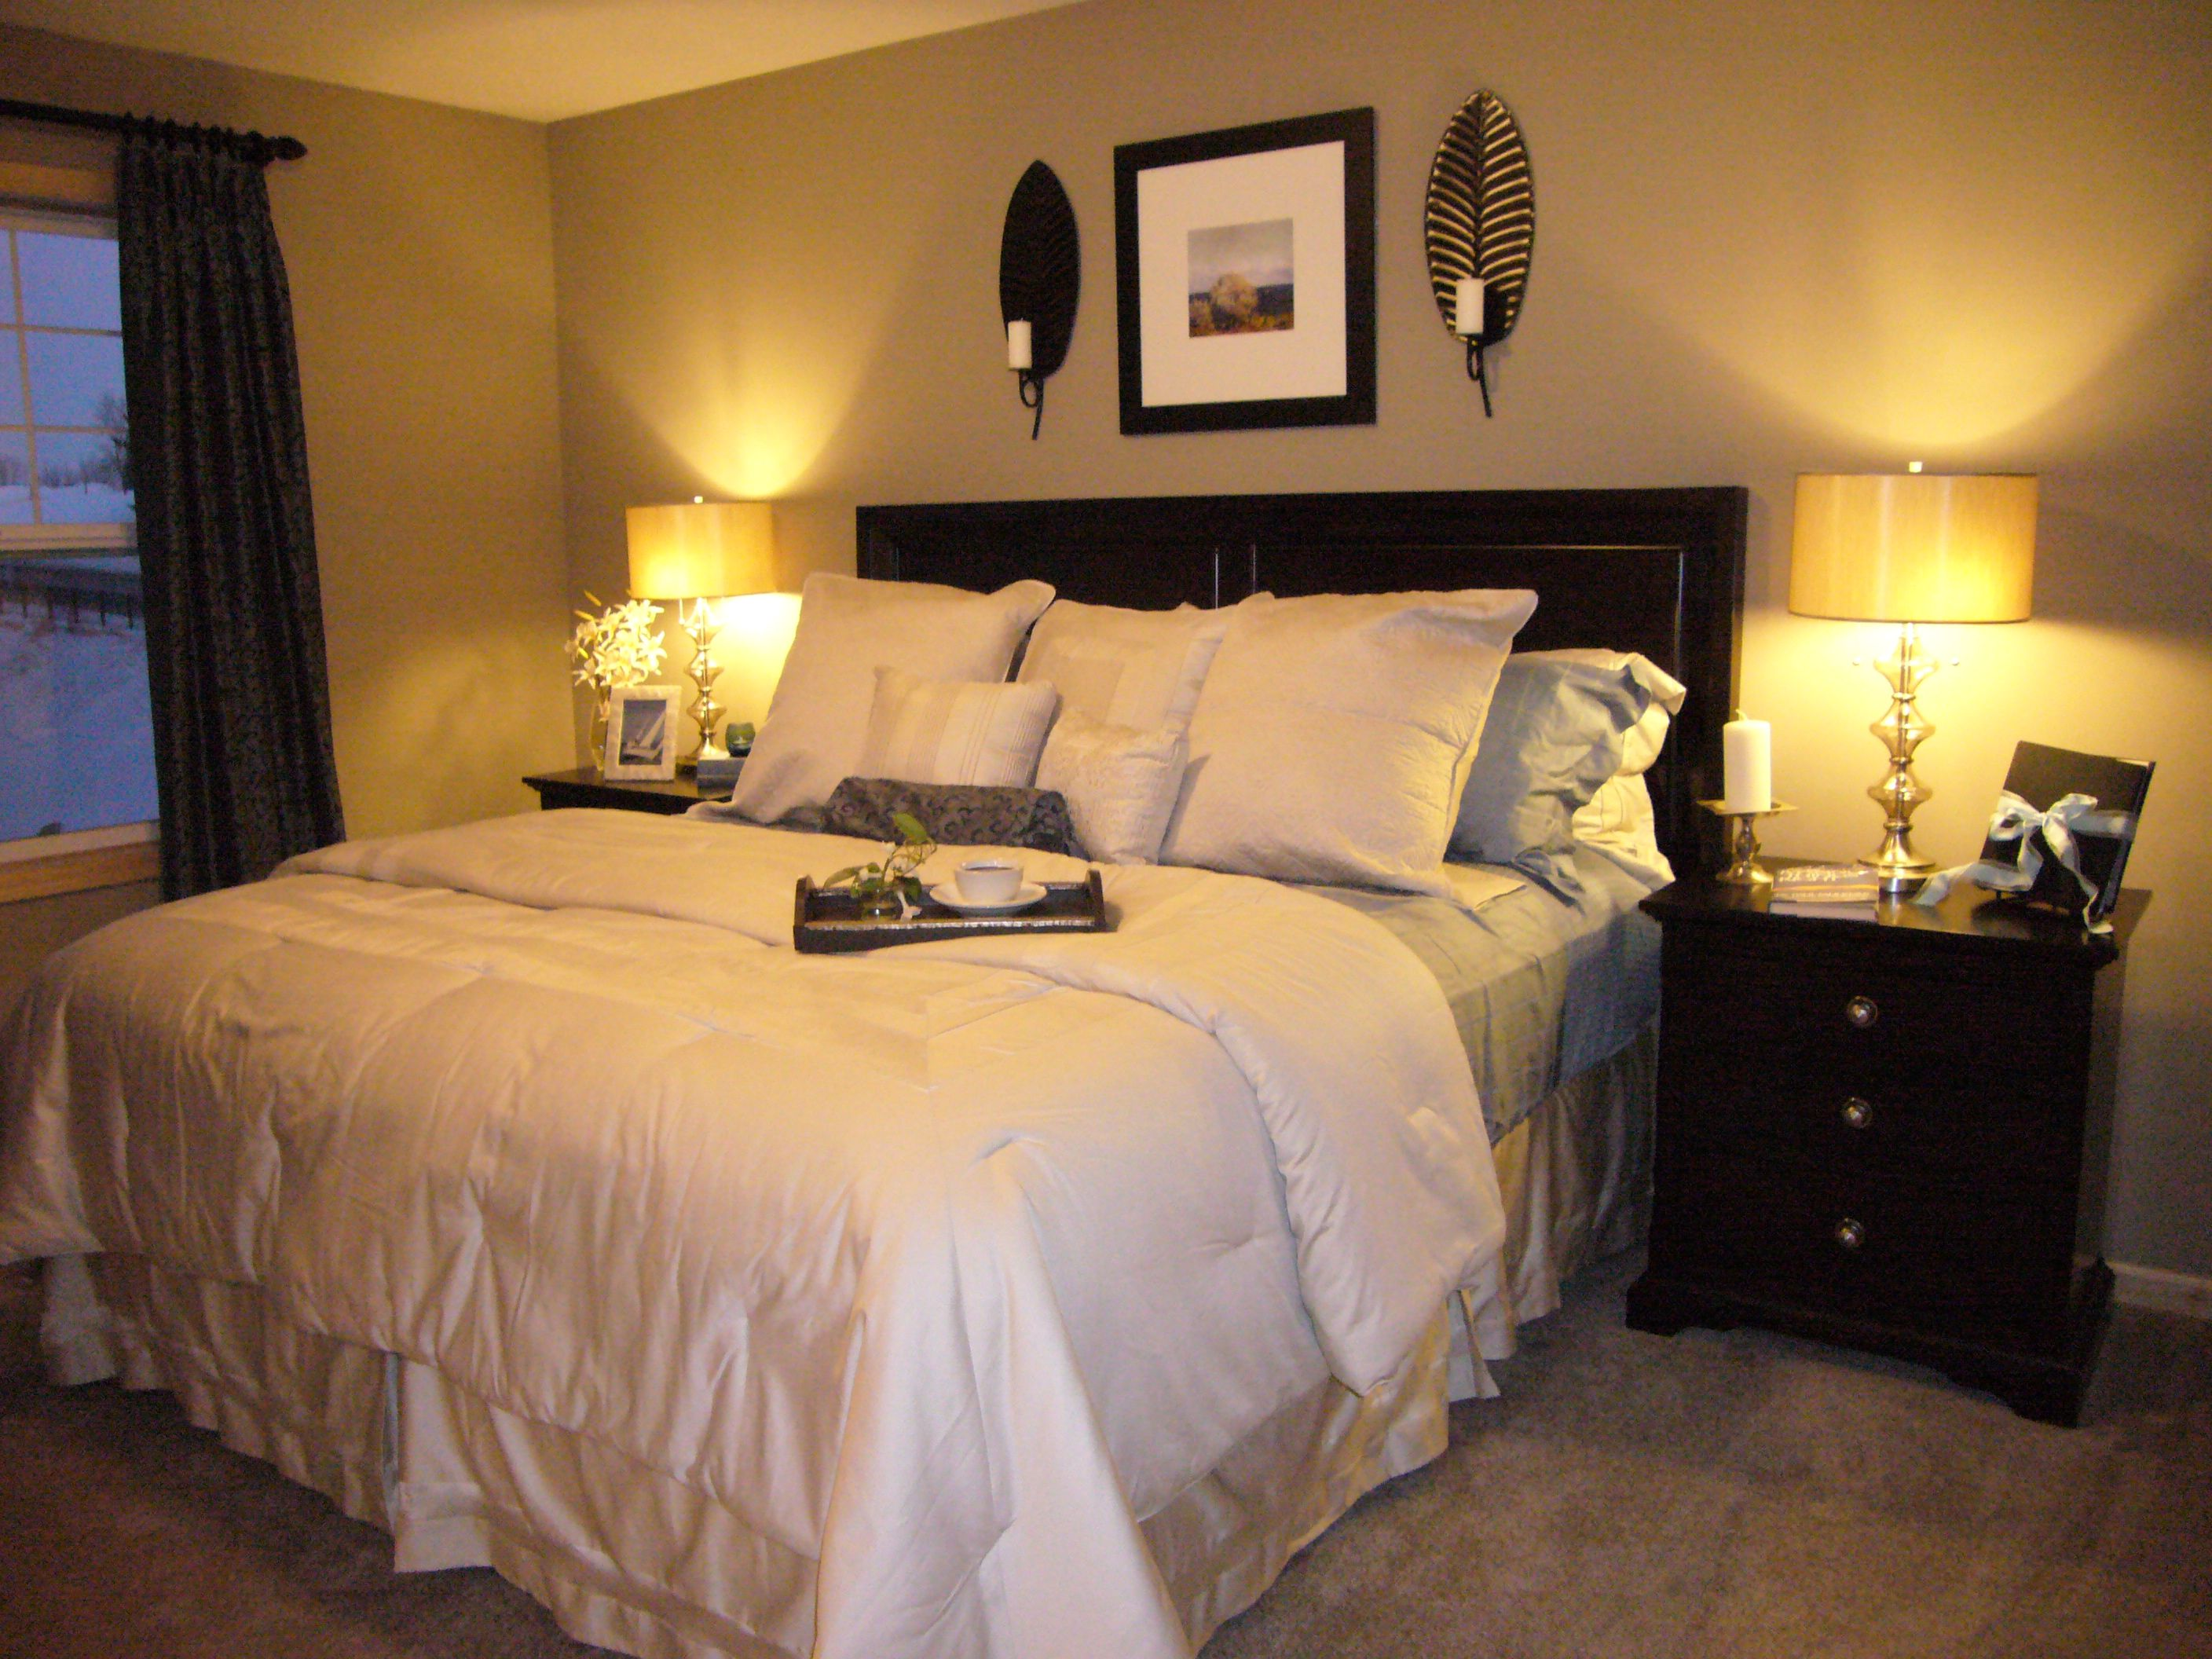 Small master bedroom ideas for decorating midcityeast Ideas for decorating my bedroom